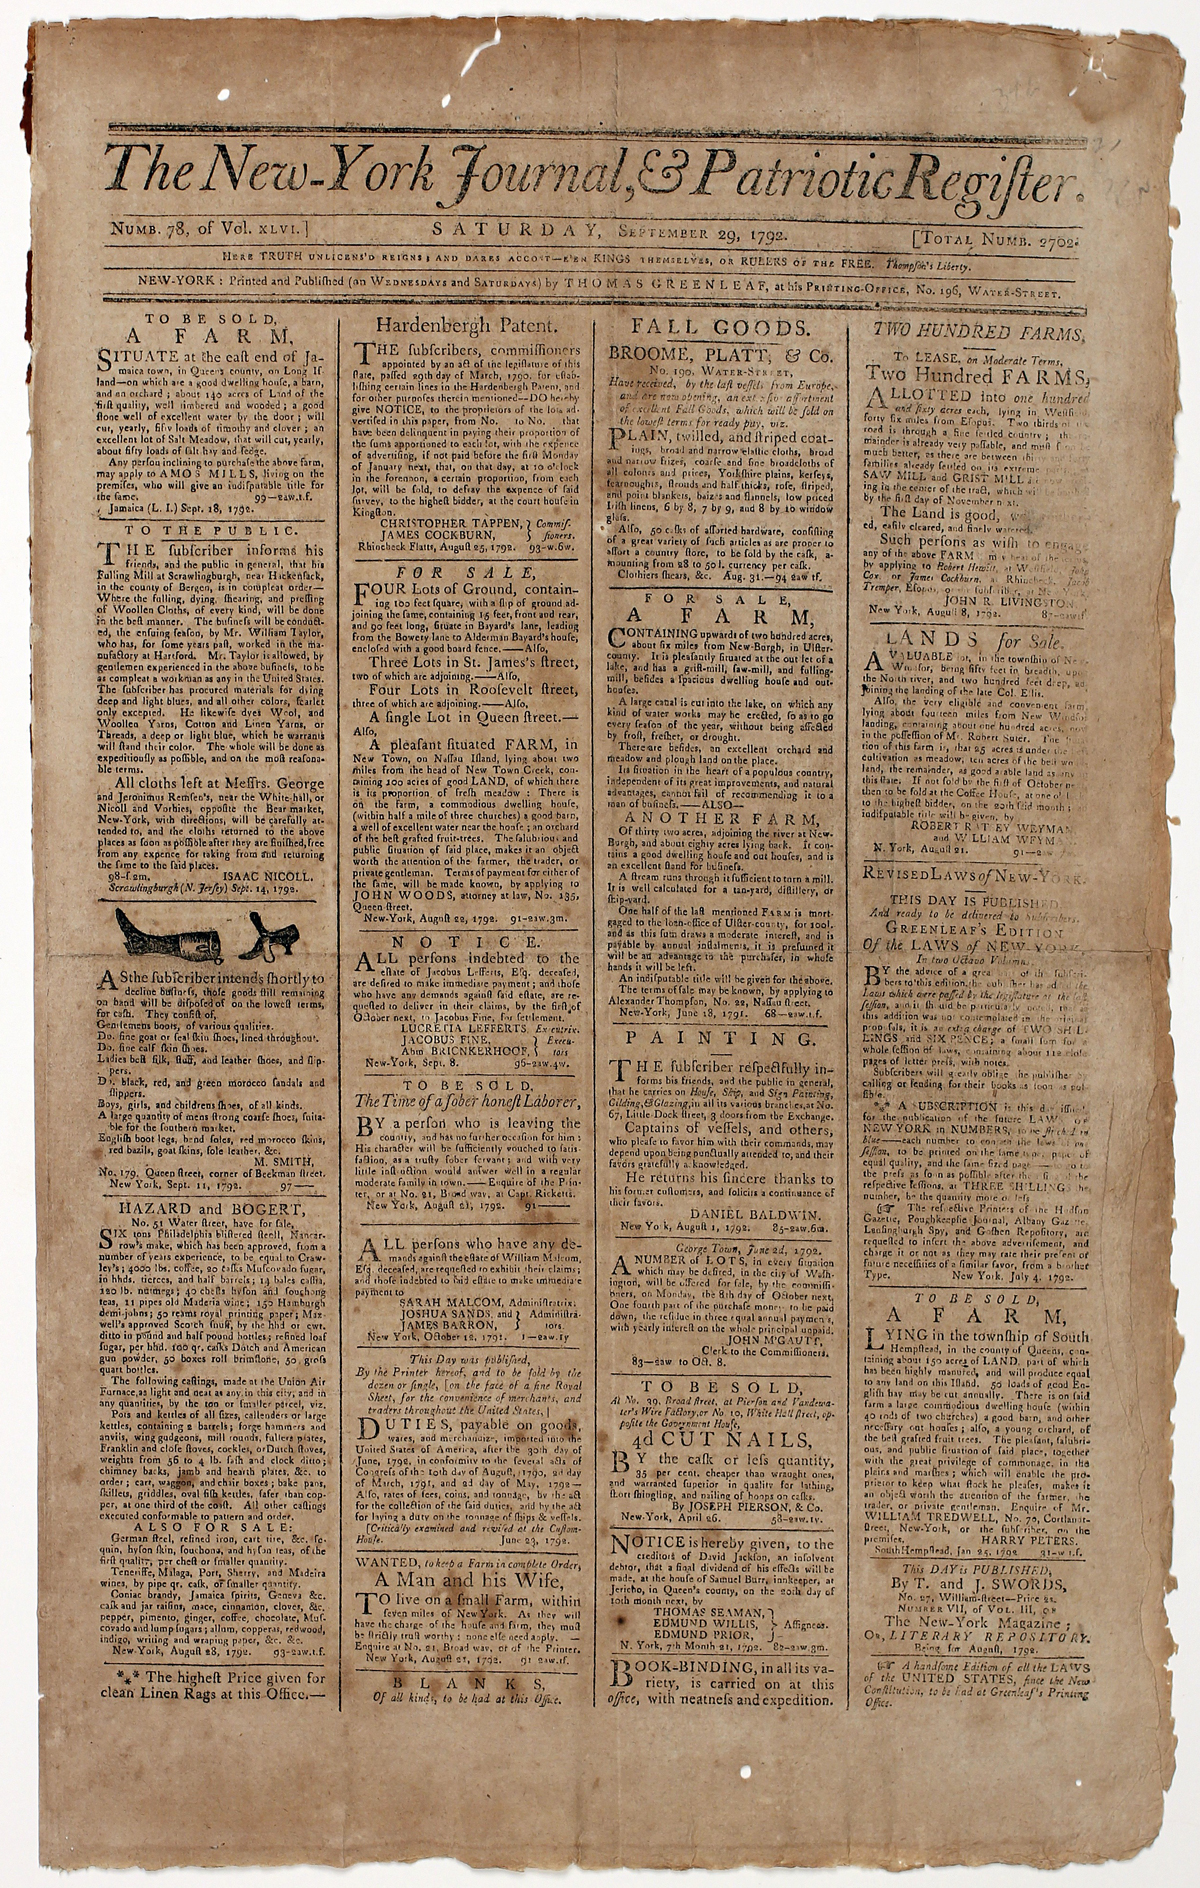 a discussion on george washingtons neutrality proclamation View notes - apush-review-george-washington's-farewell-address from history/so 2100330 at freedom high, orlando apush review: george washington's neutrality proclamation and farewell address.